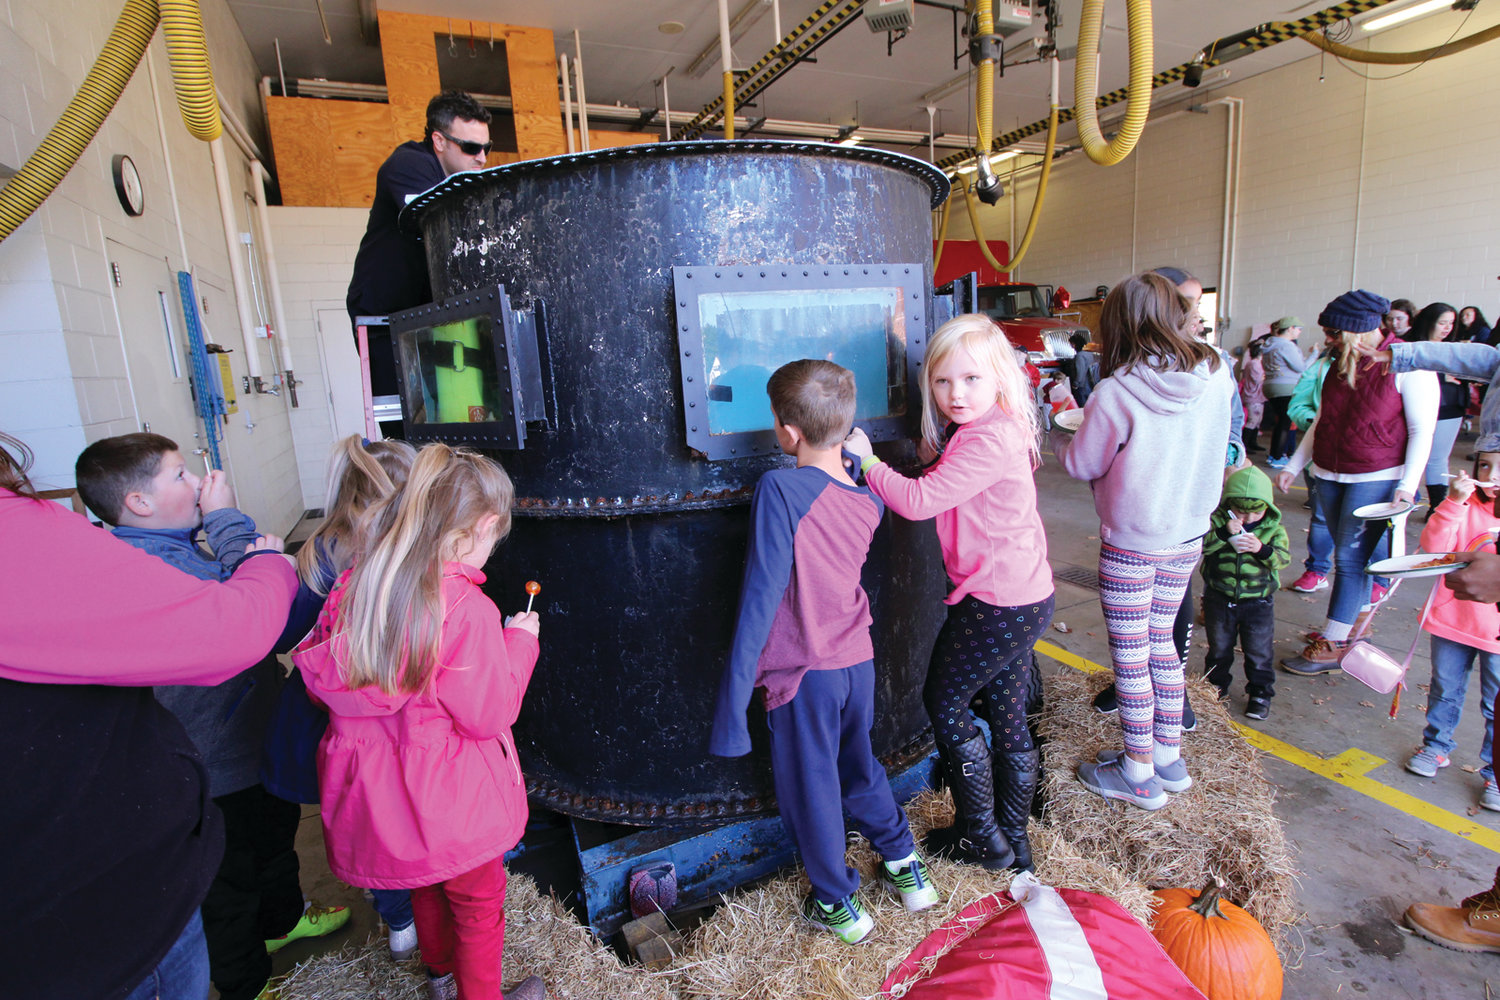 IN THERE SOMEWHERE: Kids gather at the windows of a tank where a firefighter demonstrated diving equipment and maneuvers.